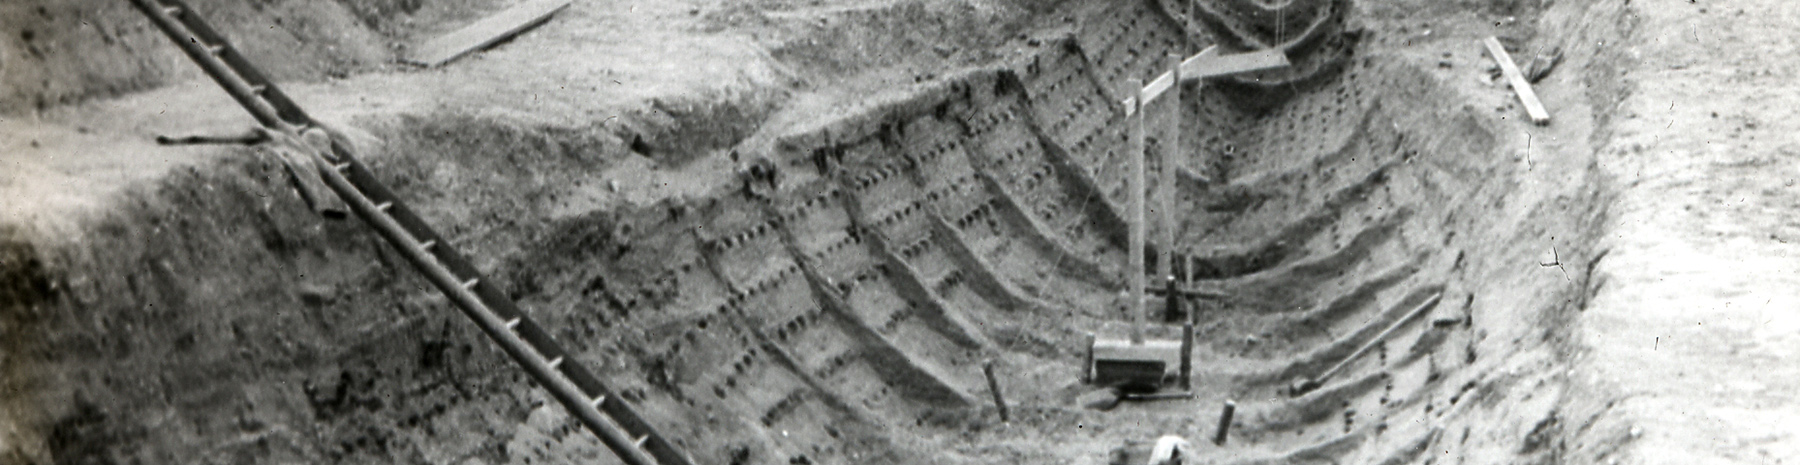 black and white photo of the Sutton Hoo ship burial excavation